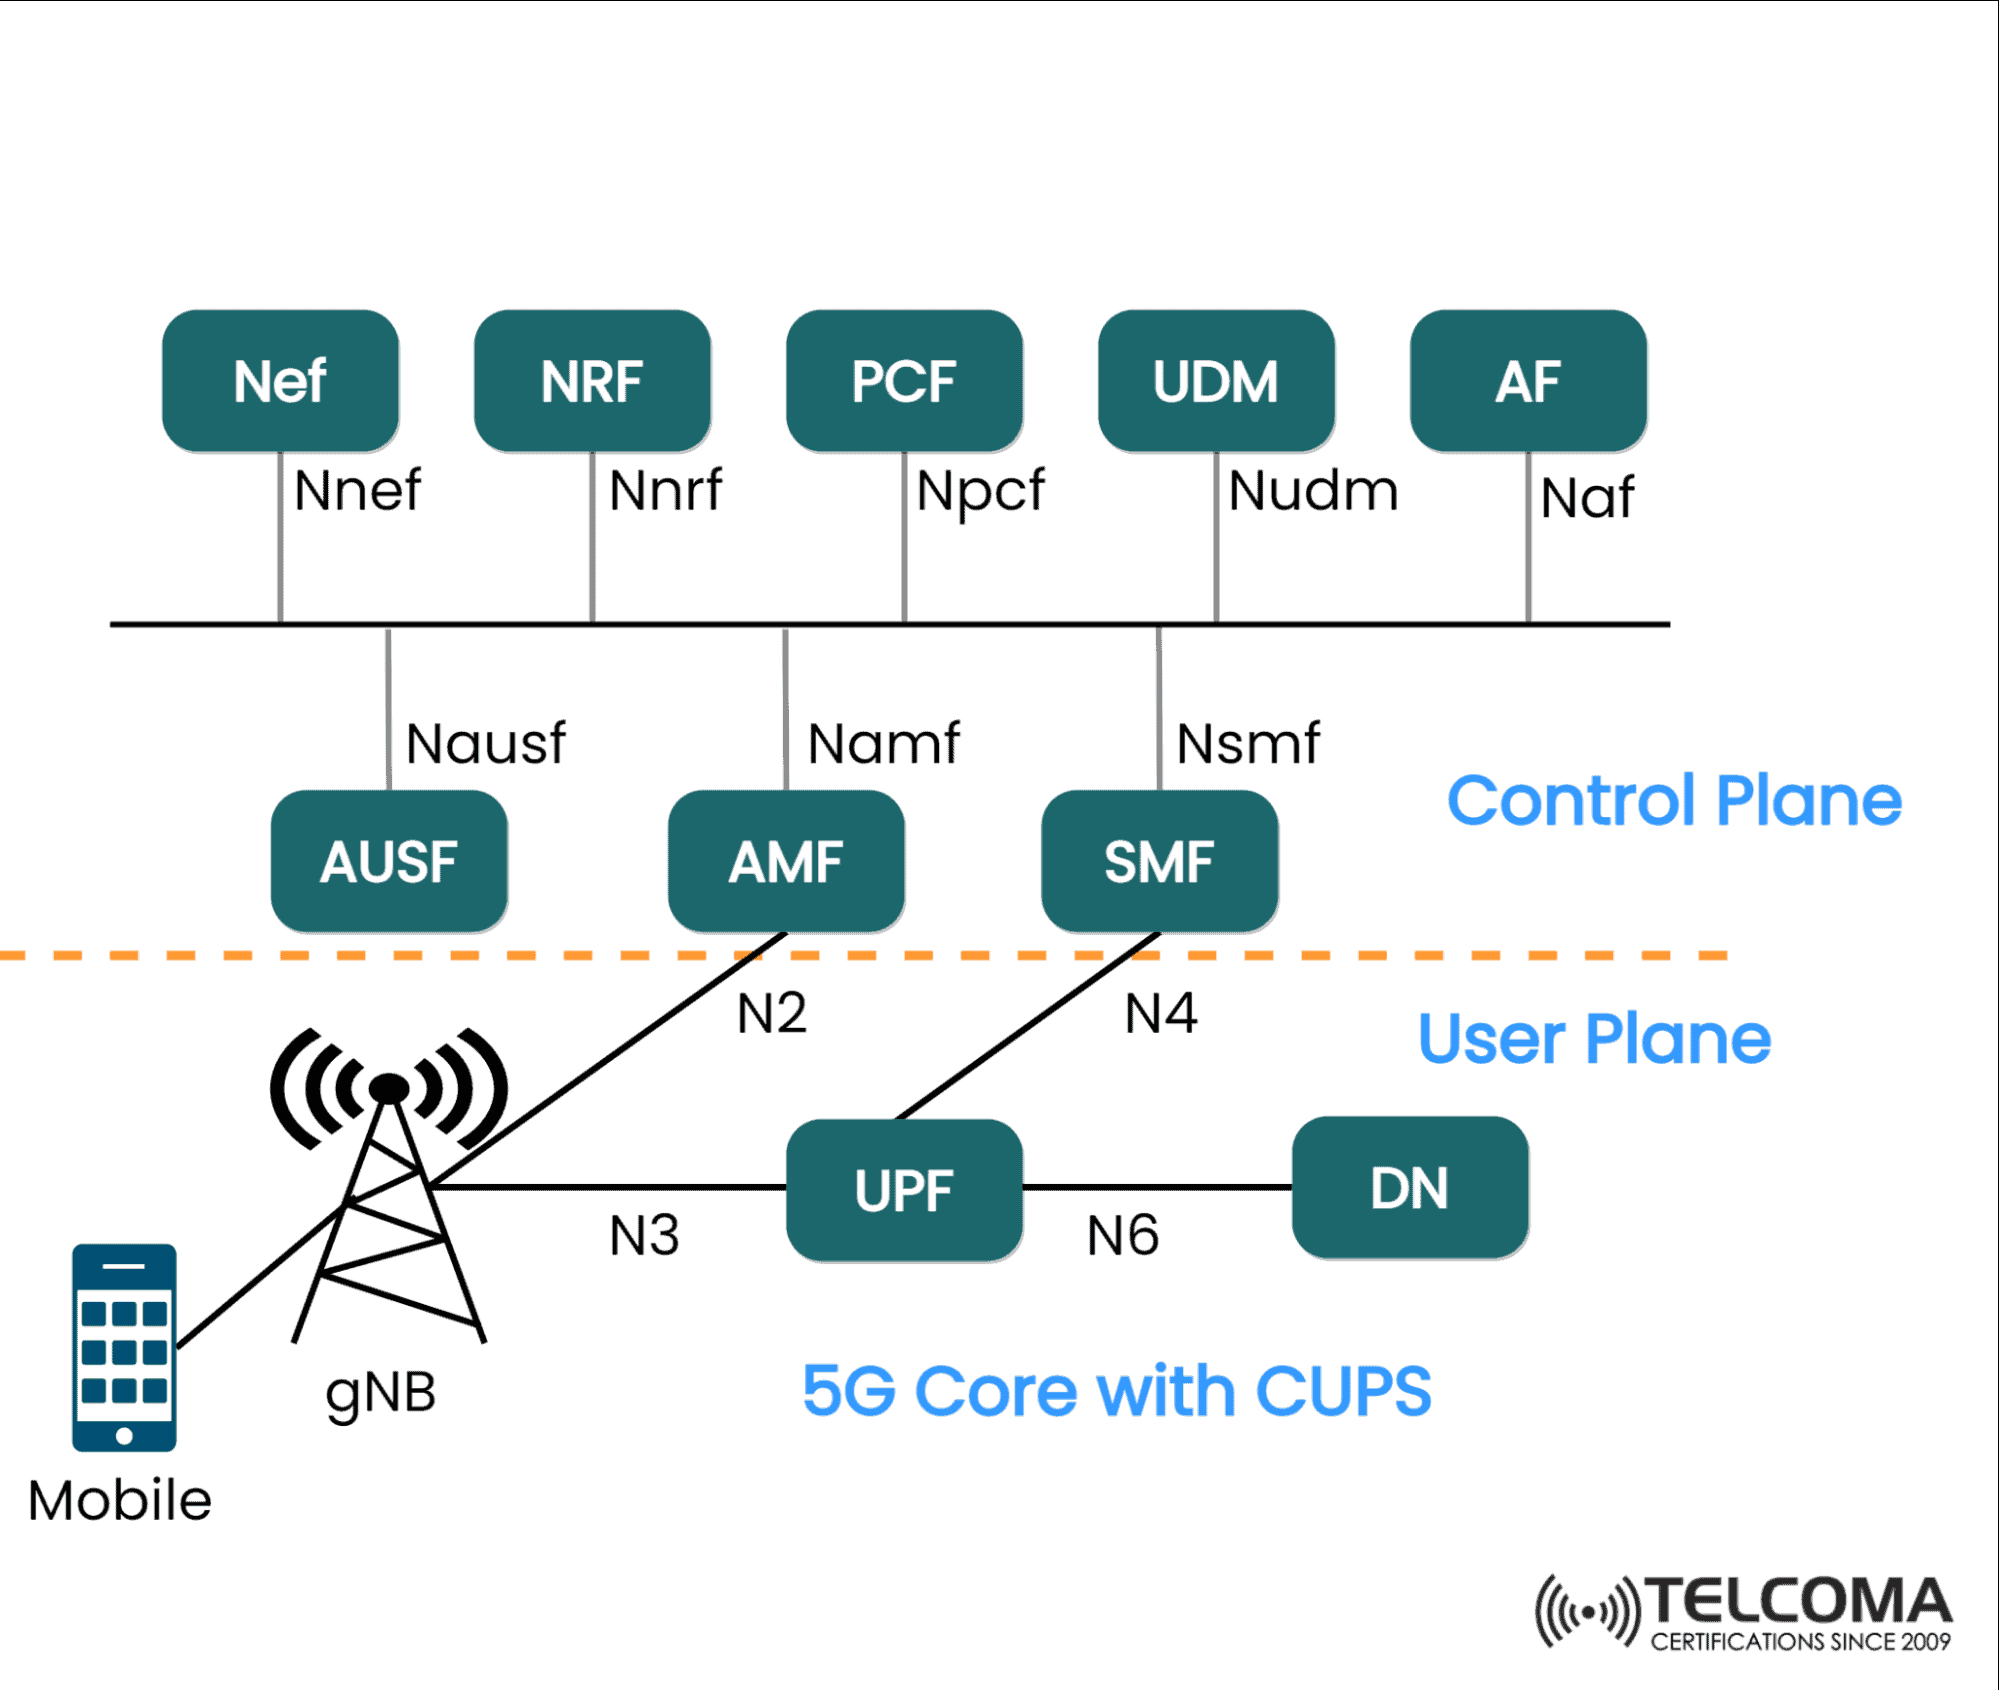 5g core with cups